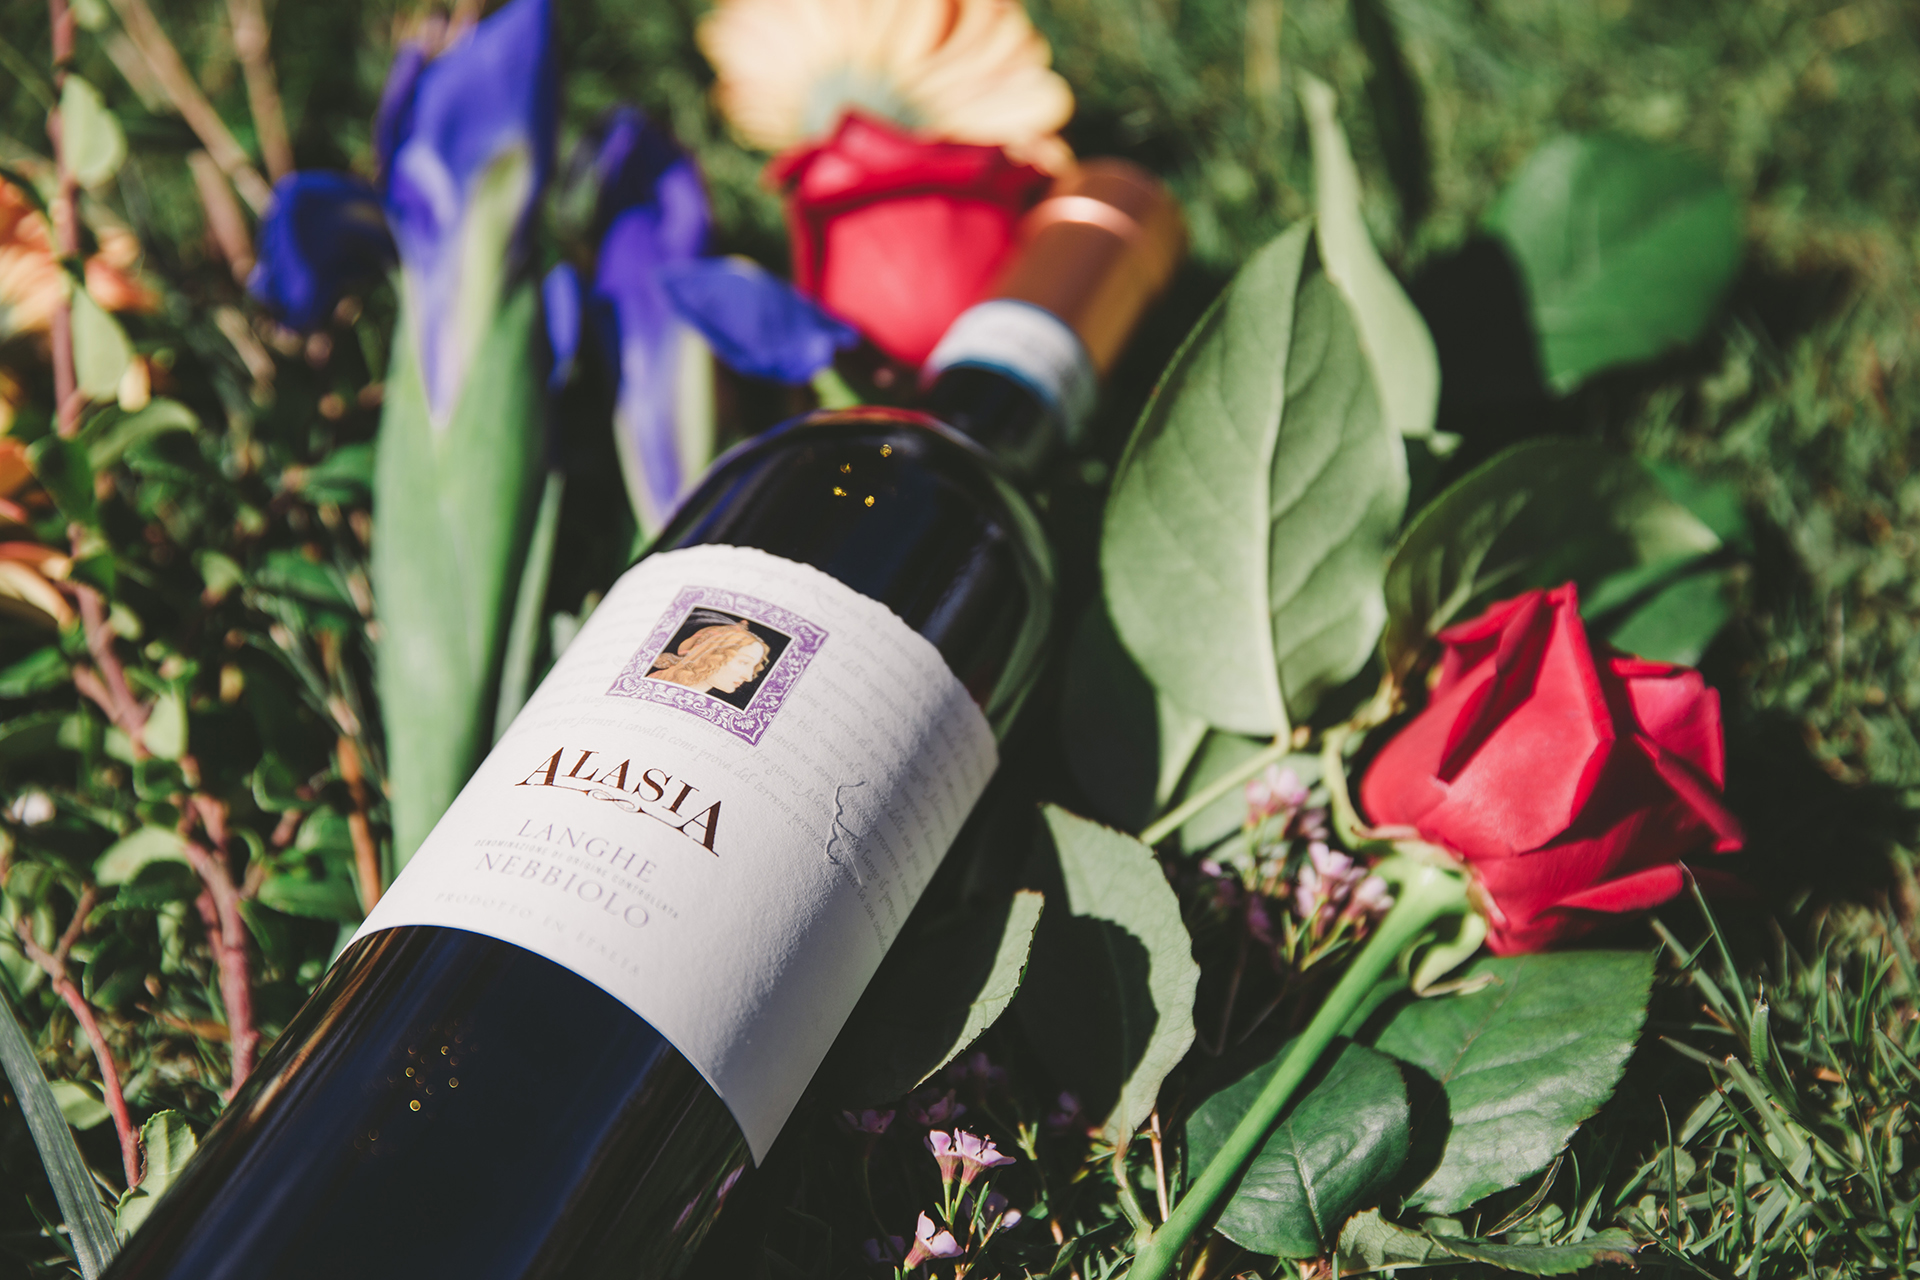 Alasia Langhe Nebbiolo - For those who love roses, this wine boasts a mix of the delicate red flowers, with a complexity of earth and spice.$25.49 (750 ml)Italy